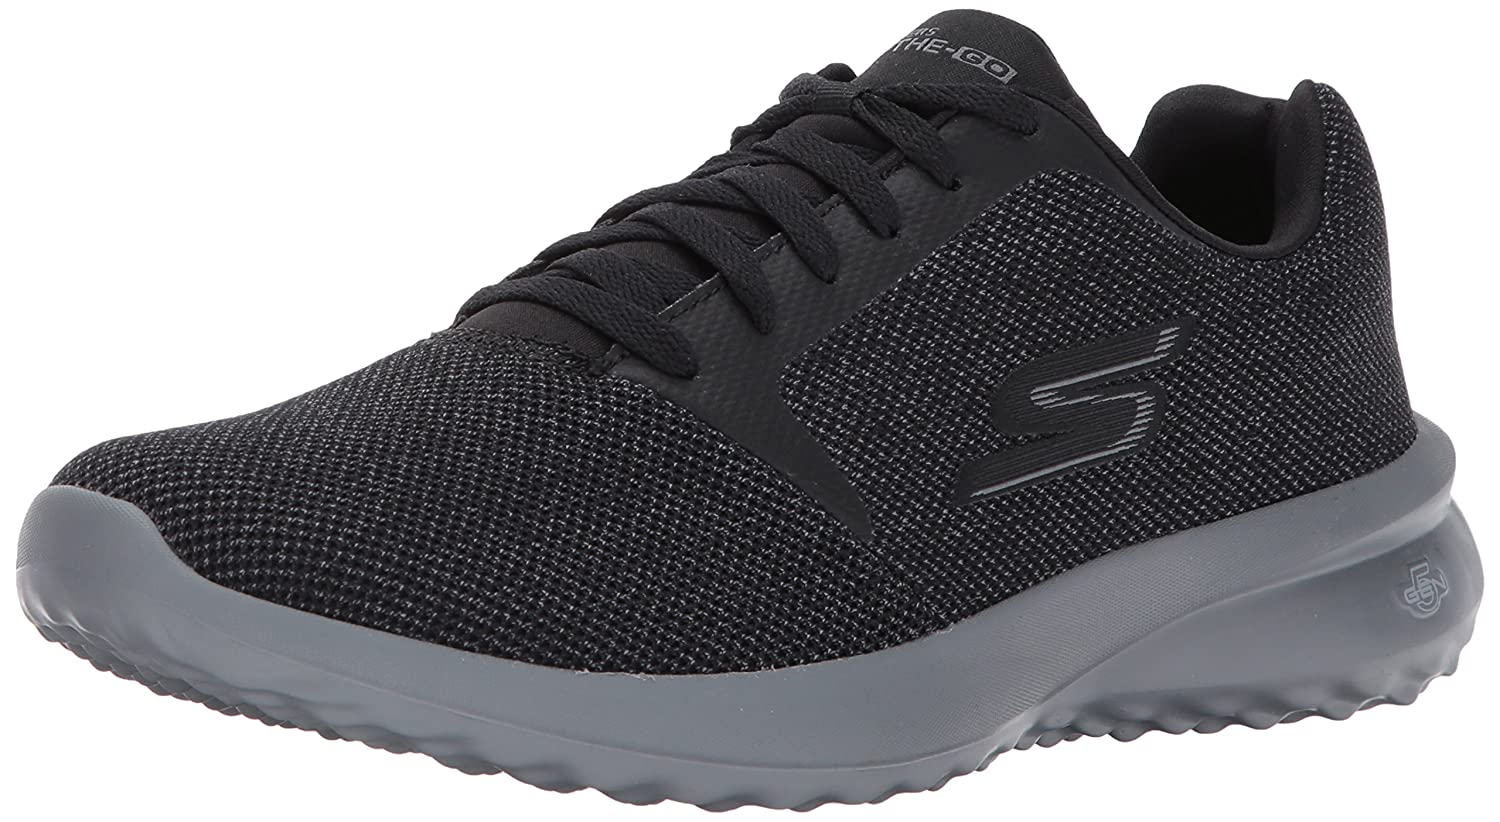 TALLA 40 EU. Skechers On-The-go City 3, Zapatillas de Entrenamiento para Hombre